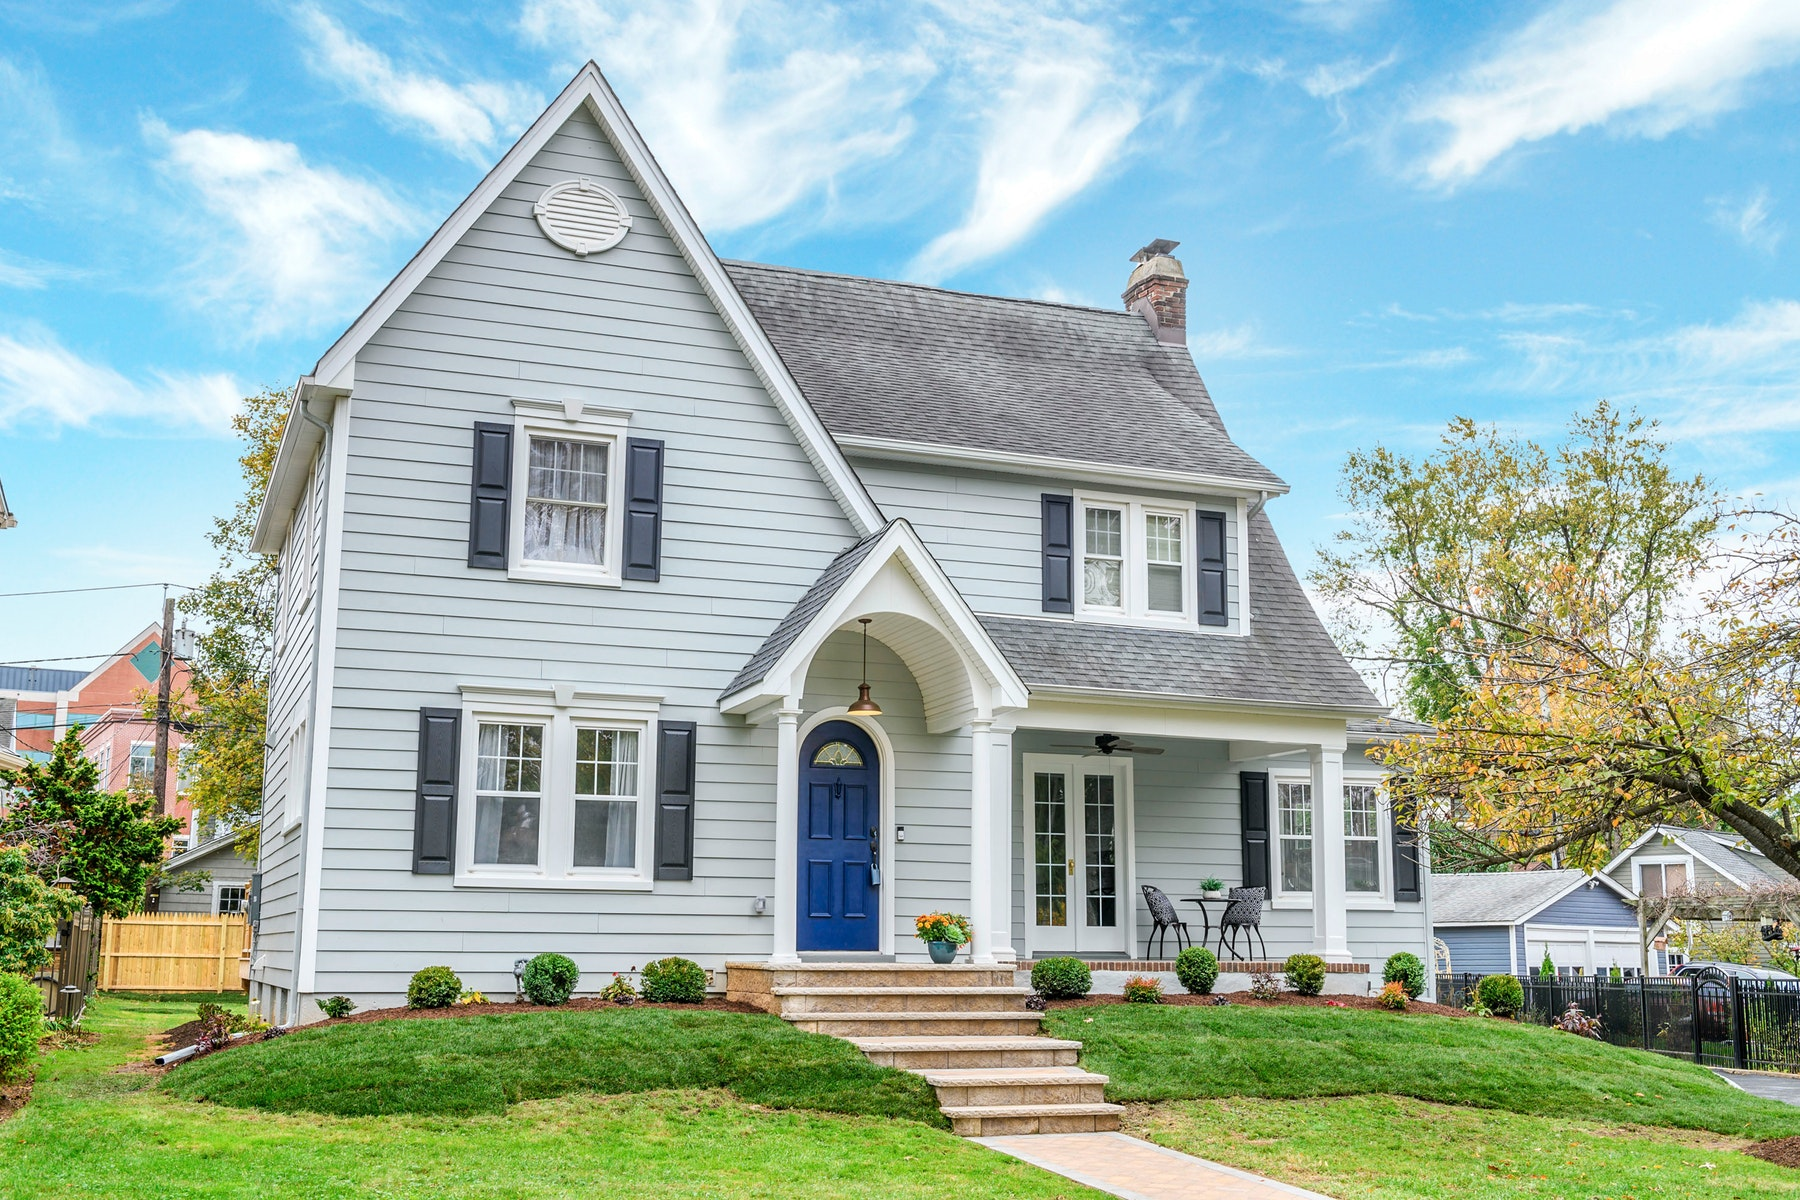 Single Family Homes for Active at Artfully Renovated Colonial 16 Inness Place Montclair, New Jersey 07042 United States